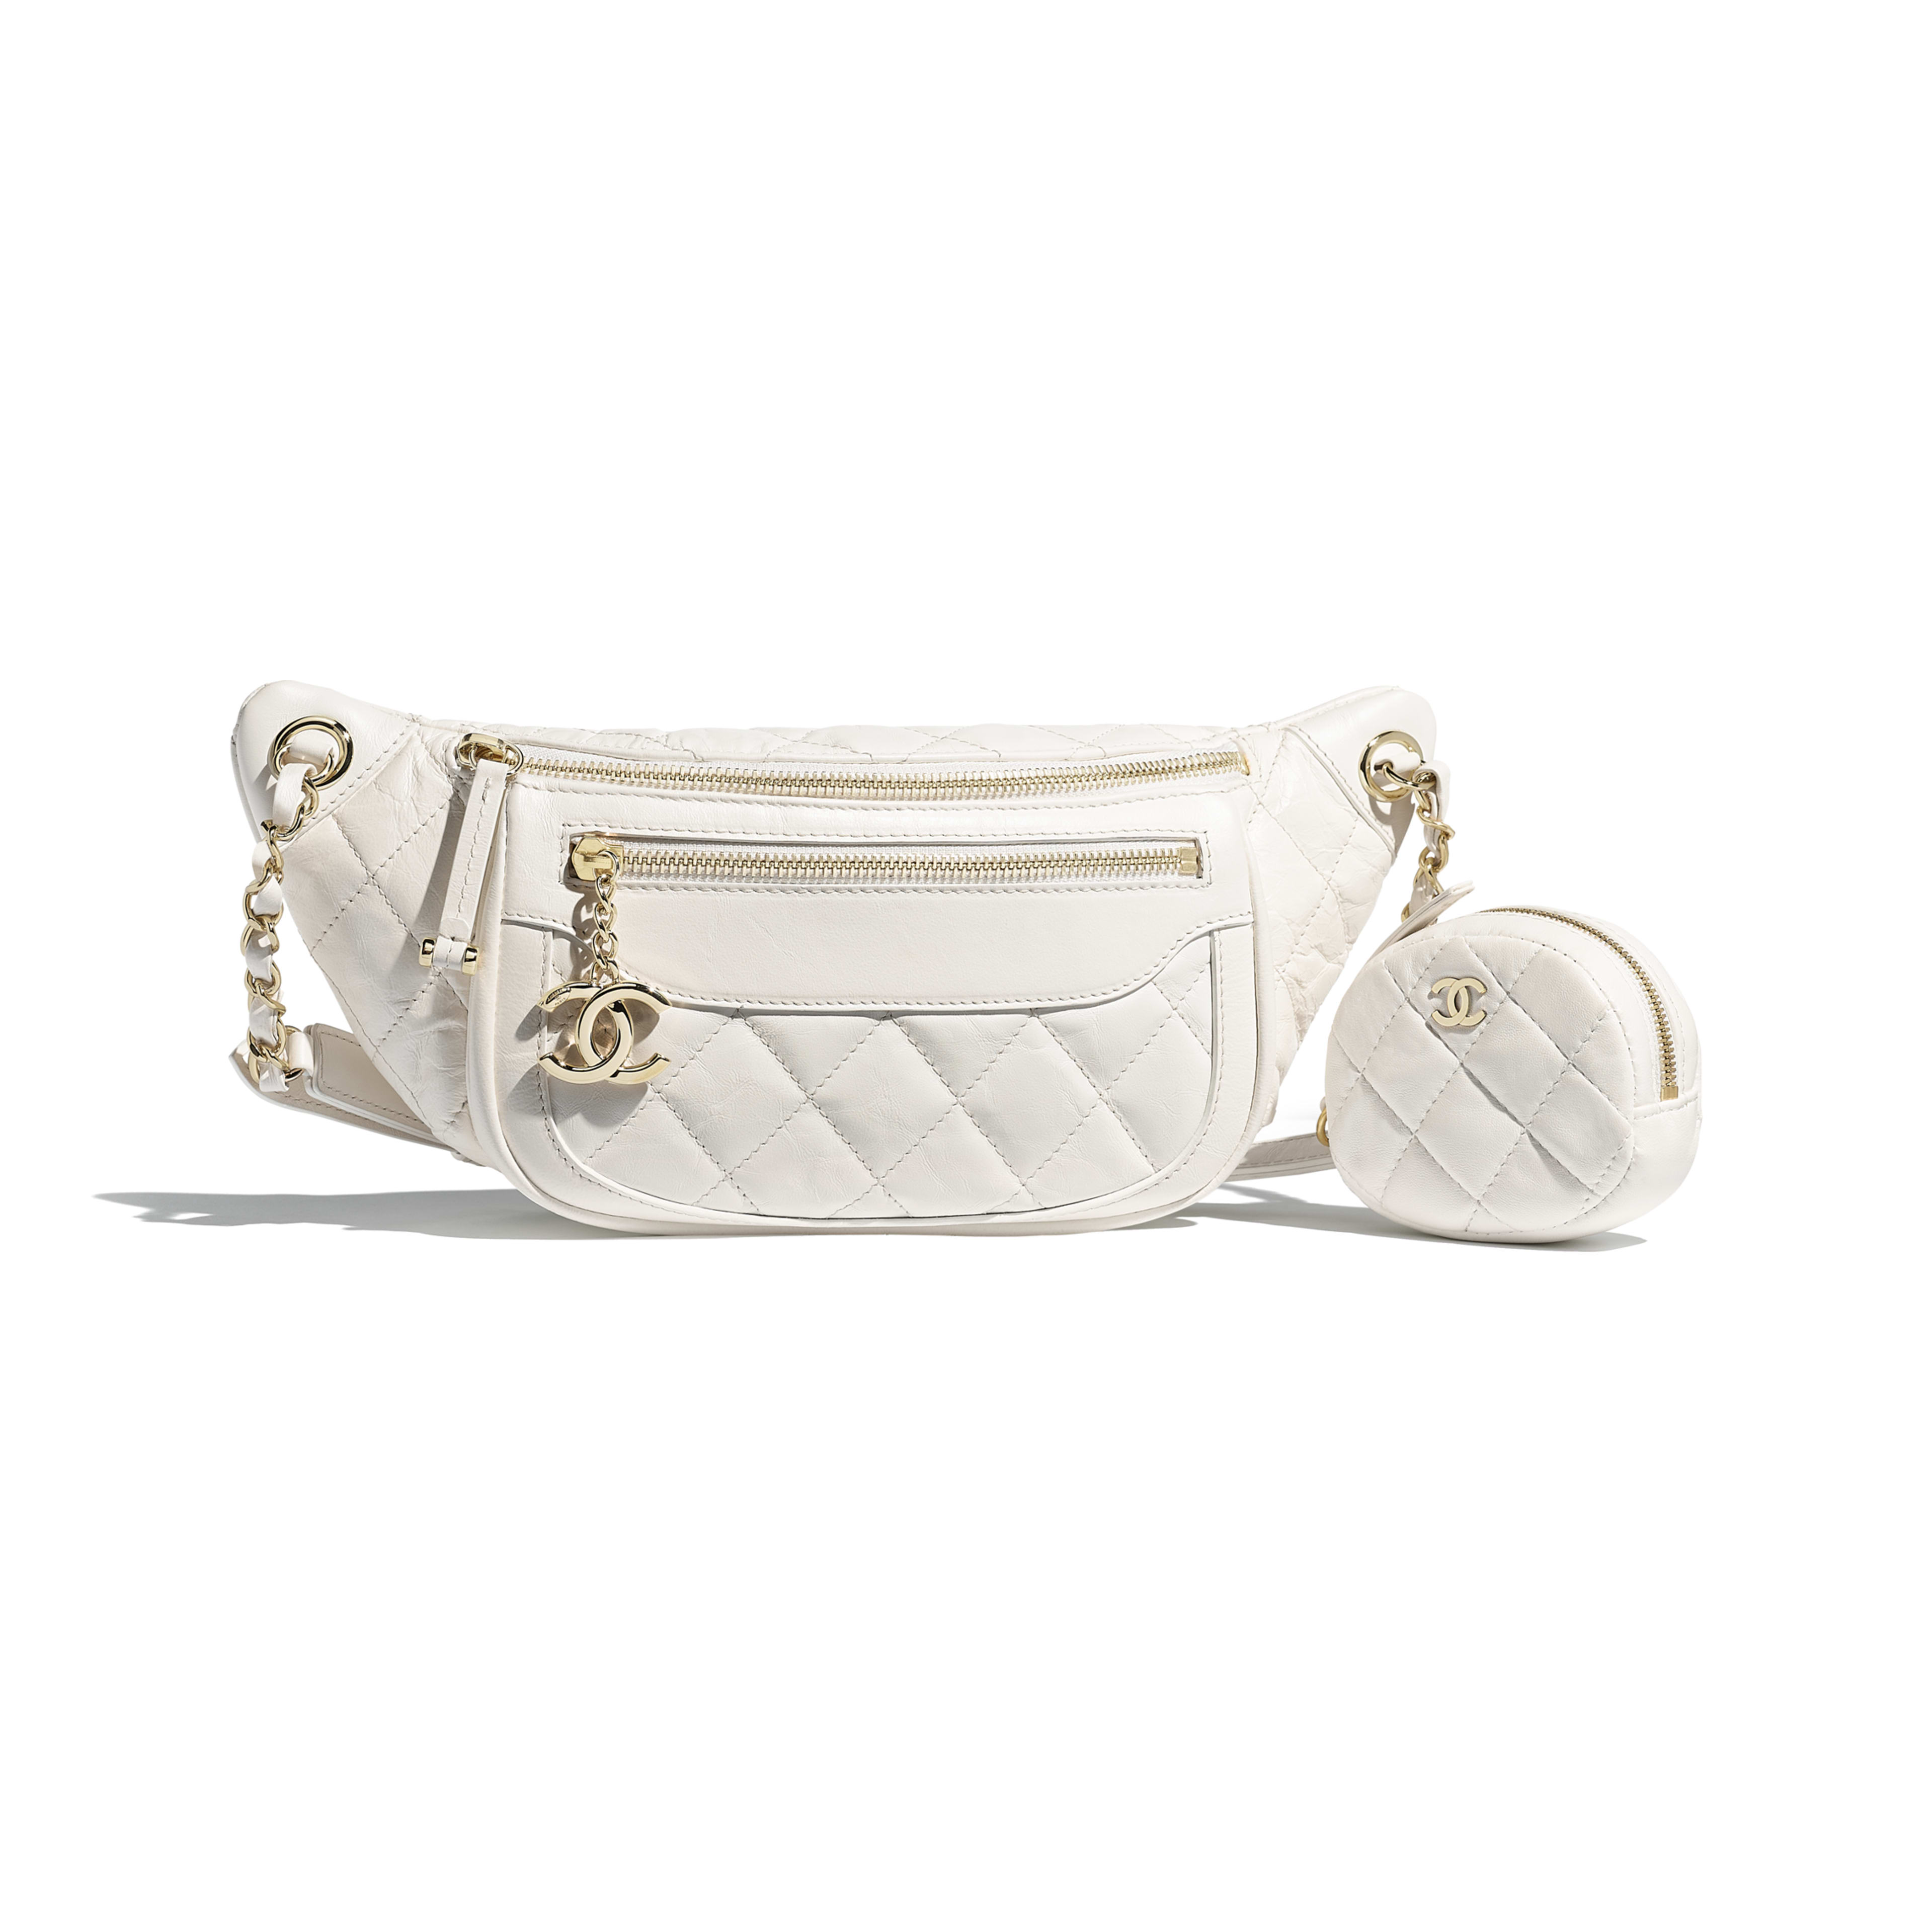 Waist Bag & Coin Purse - White - Aged Calfskin & Gold-Tone Metal - Default view - see full sized version